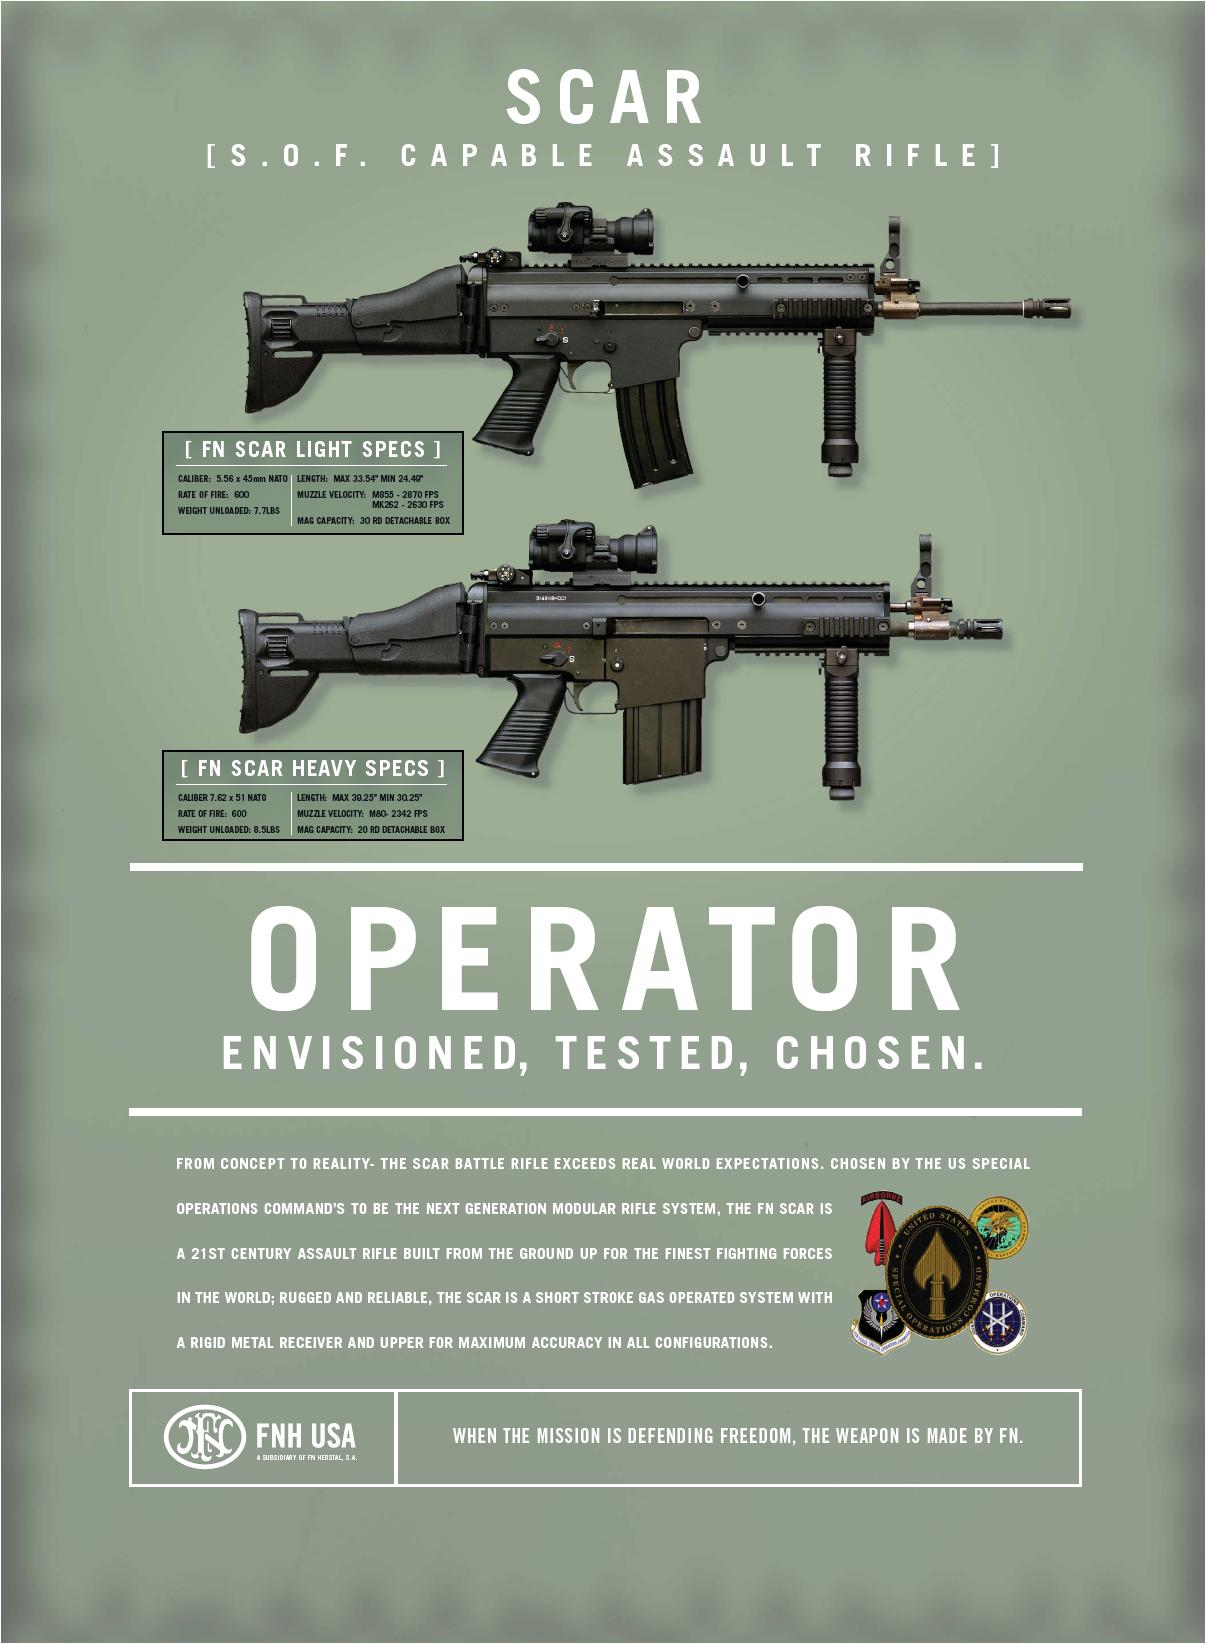 FN%20SCAR <!  :en  >FNH USA S.O.F. Capable Assault Rifle Spec Sheet. (Weapon Pics!)<!  :  >